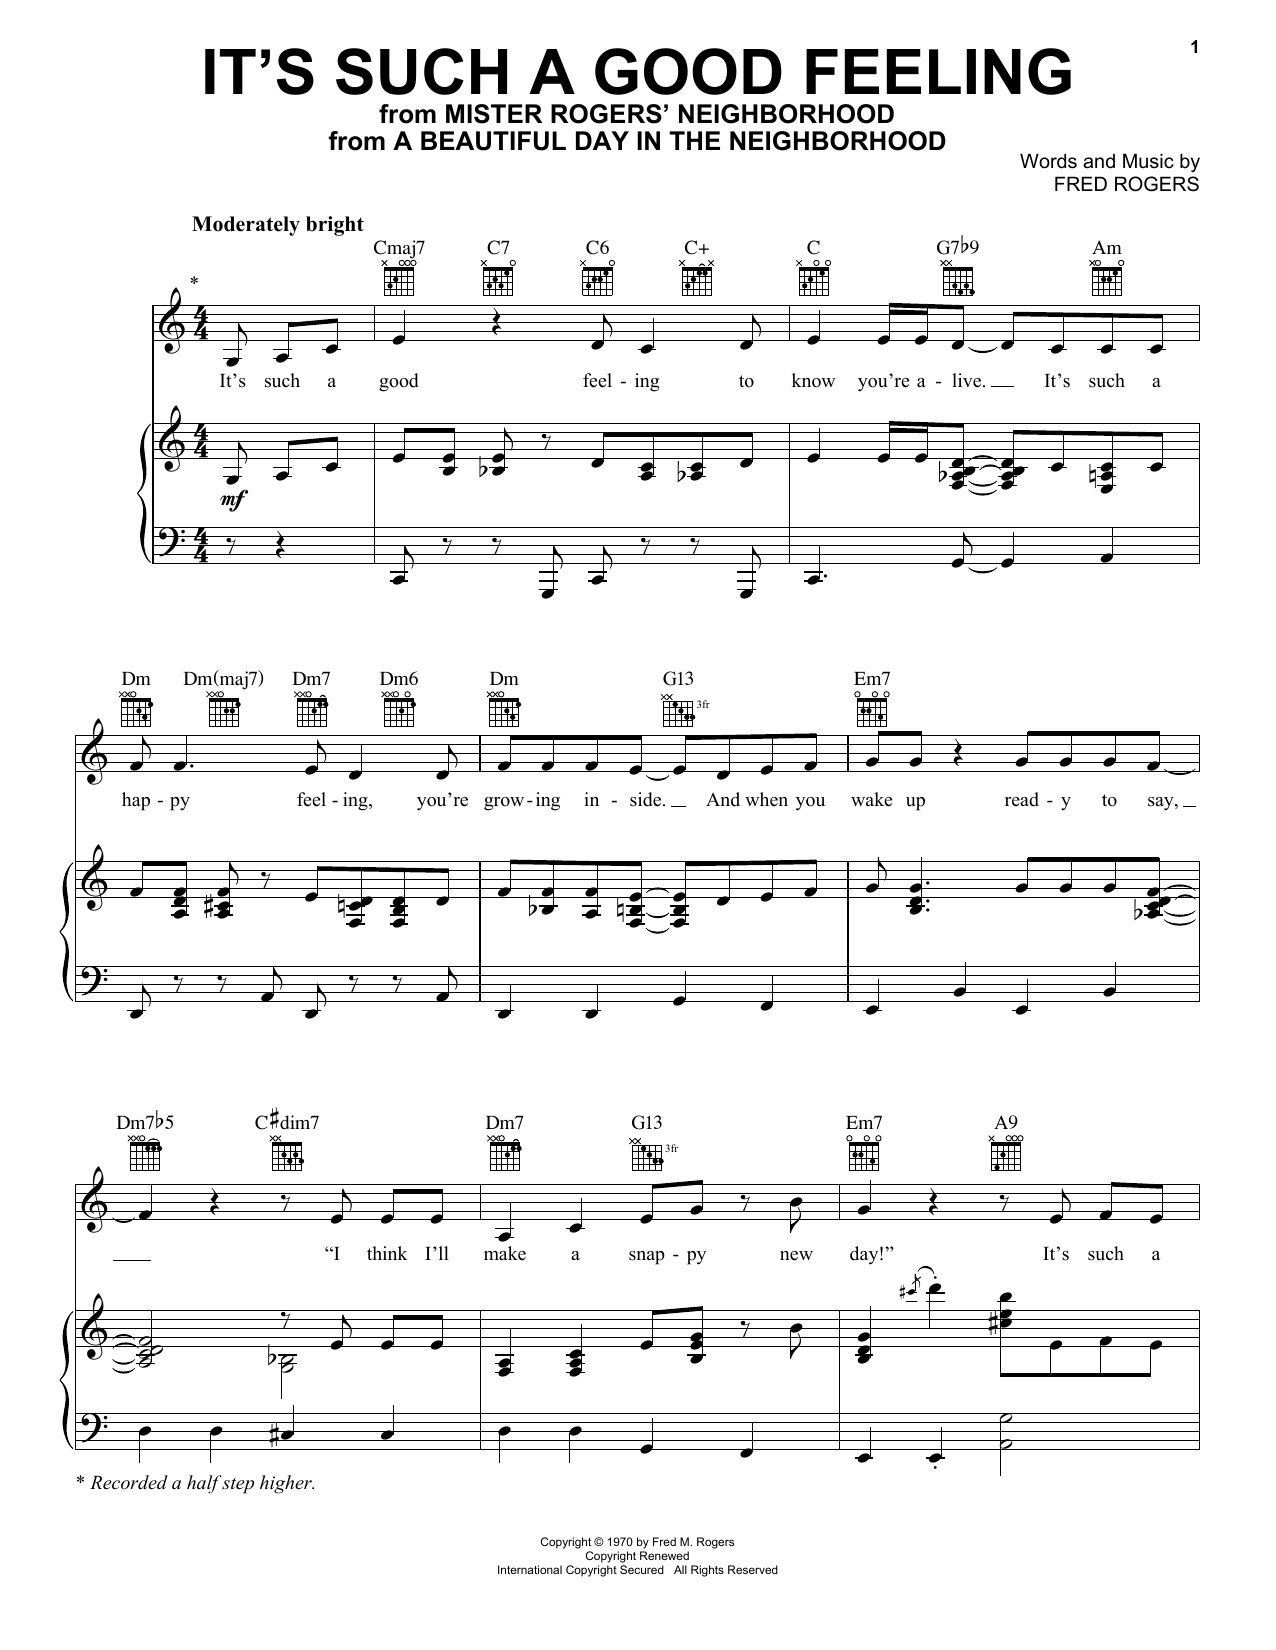 Fred Rogers It S Such A Good Feeling From A Beautiful Day In The Neighborhood Sheet Music Pdf Notes Chords Children Score Piano Vocal Guitar Right Hand Melody Download Printable Sku 253546